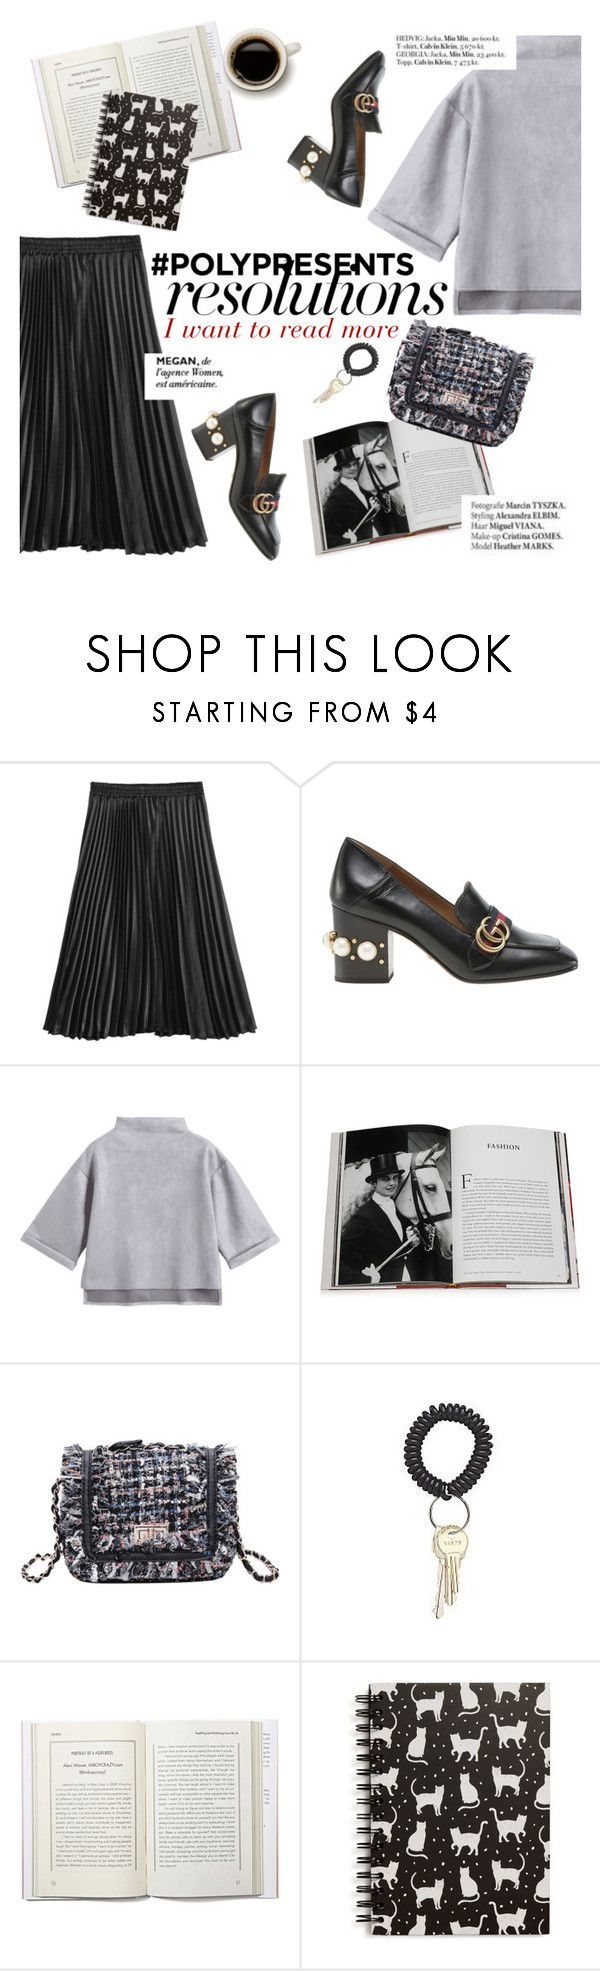 """#PolyPresents: New Year's Resolutions"" by punnky ❤ liked on Polyvore featuring Gucci, Assouline Publishing, Tri-coastal Design, Haute Hippie, contestentry and polyPresents"